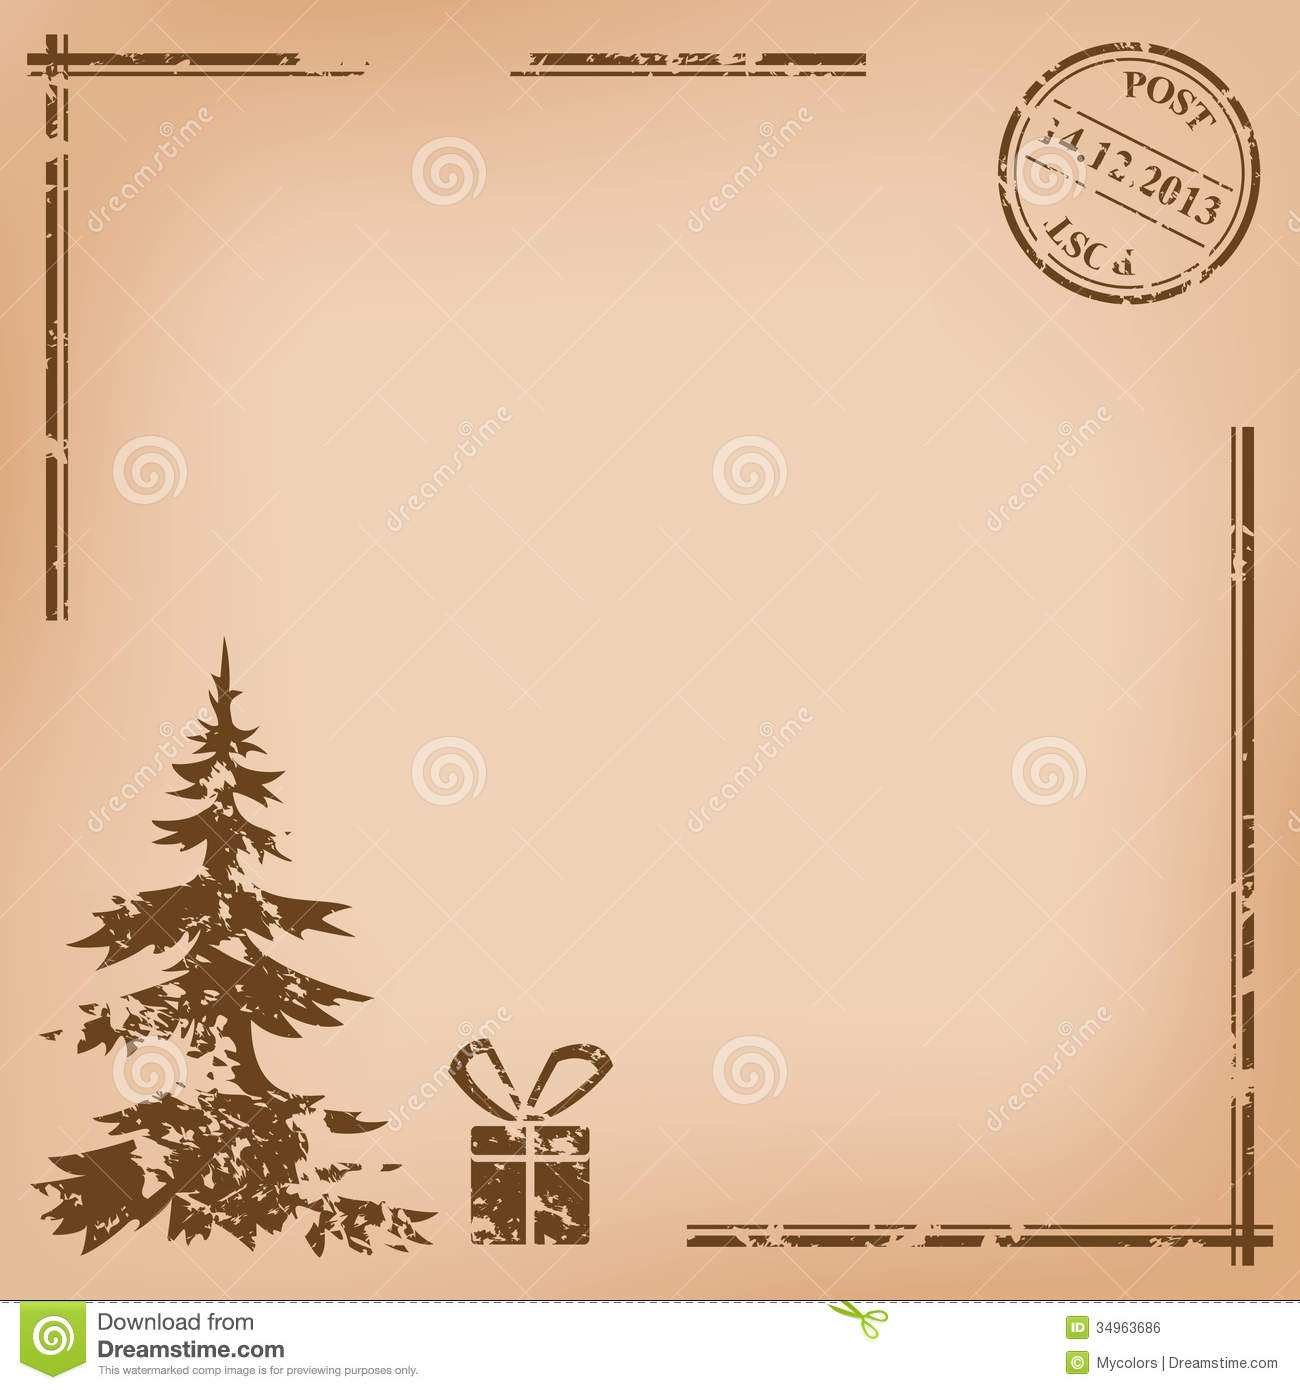 old-vintage-postcard-christmas-vector-eps-used-mesh-34963686 Decorative Letter Paper Template on romantic letter paper template, decorative gift tags template, decorative labels template, christmas letter paper template,